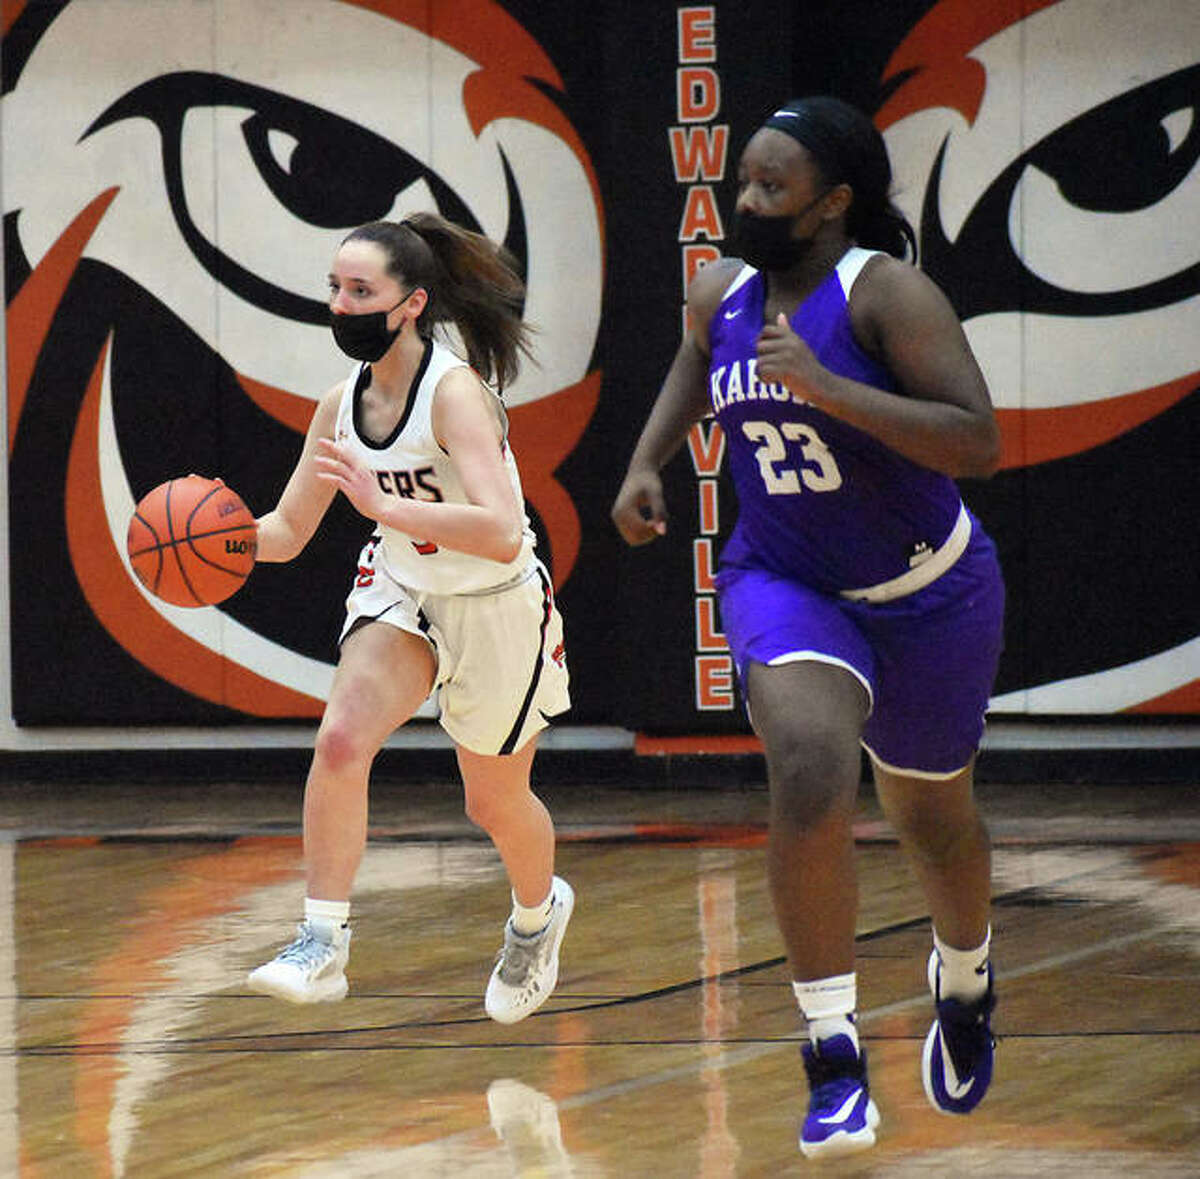 Edwardsville guard Gwen Anderson, left, brings the ball up the court for the Tigers in the fourth quarter of Thursday's game against Collinsville.